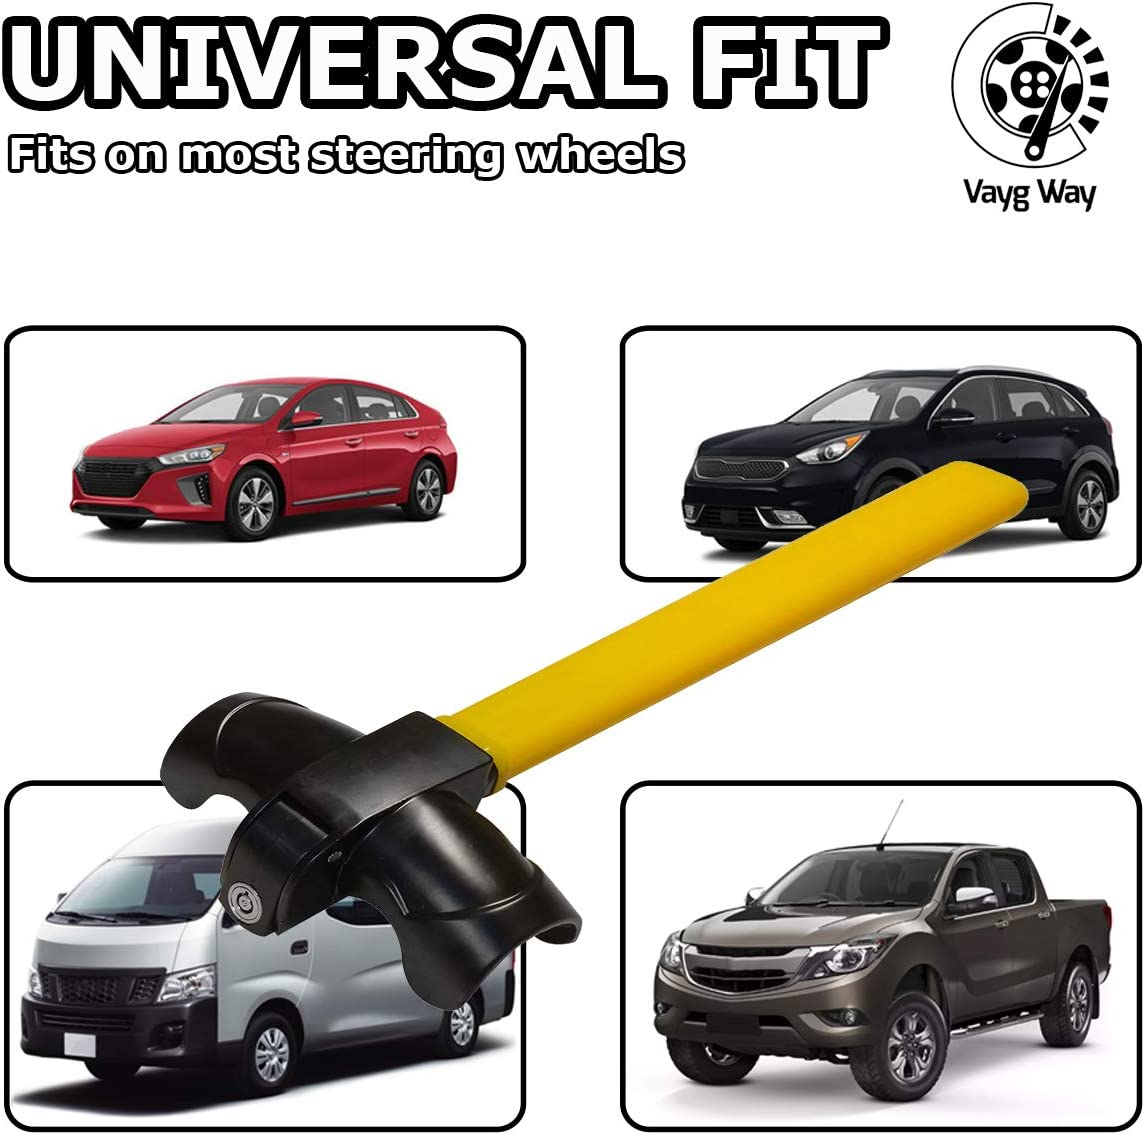 Car Anti-Theft Wheel Lock VaygWay Car Steering Wheel Lock Universal Car Truck Van SUV Auto Security Travel Locking Gear